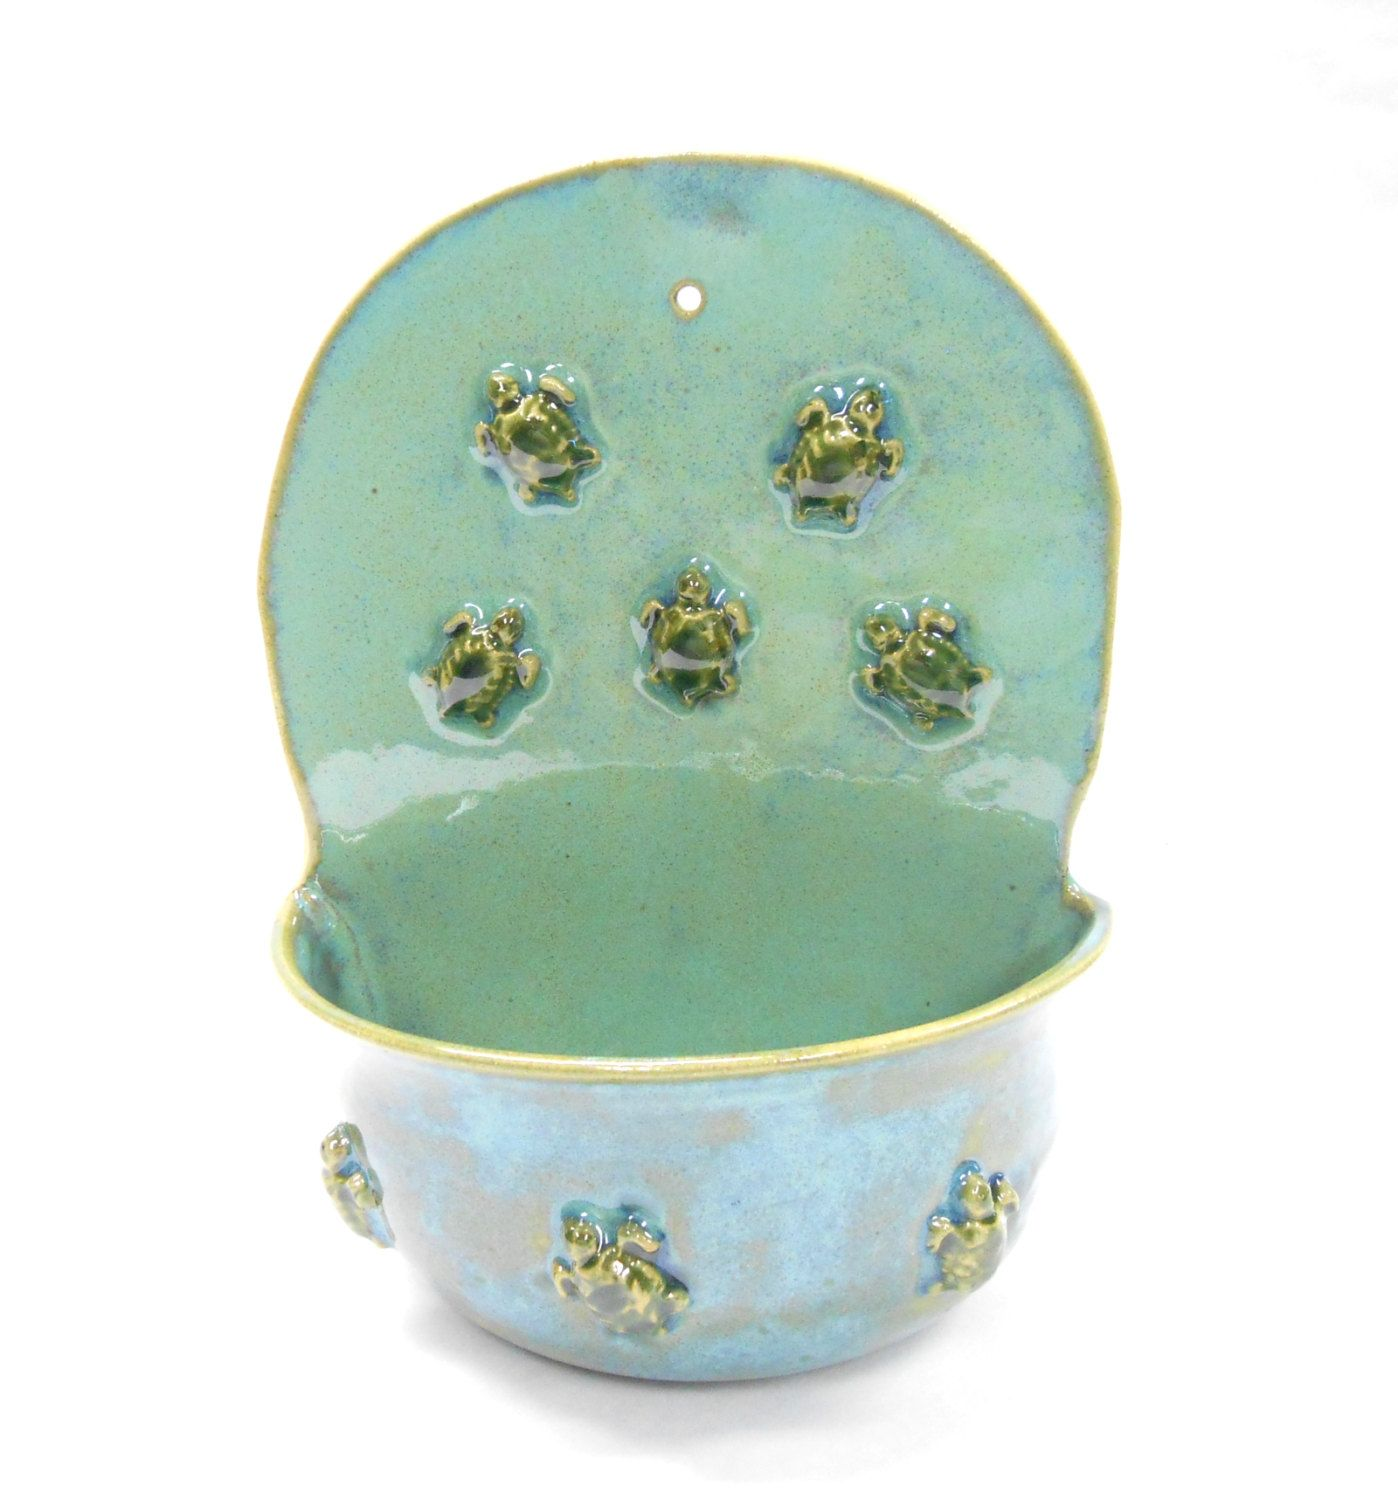 Pottery Wall Planter With Turtles Ceramic Planter Turtle 400 x 300